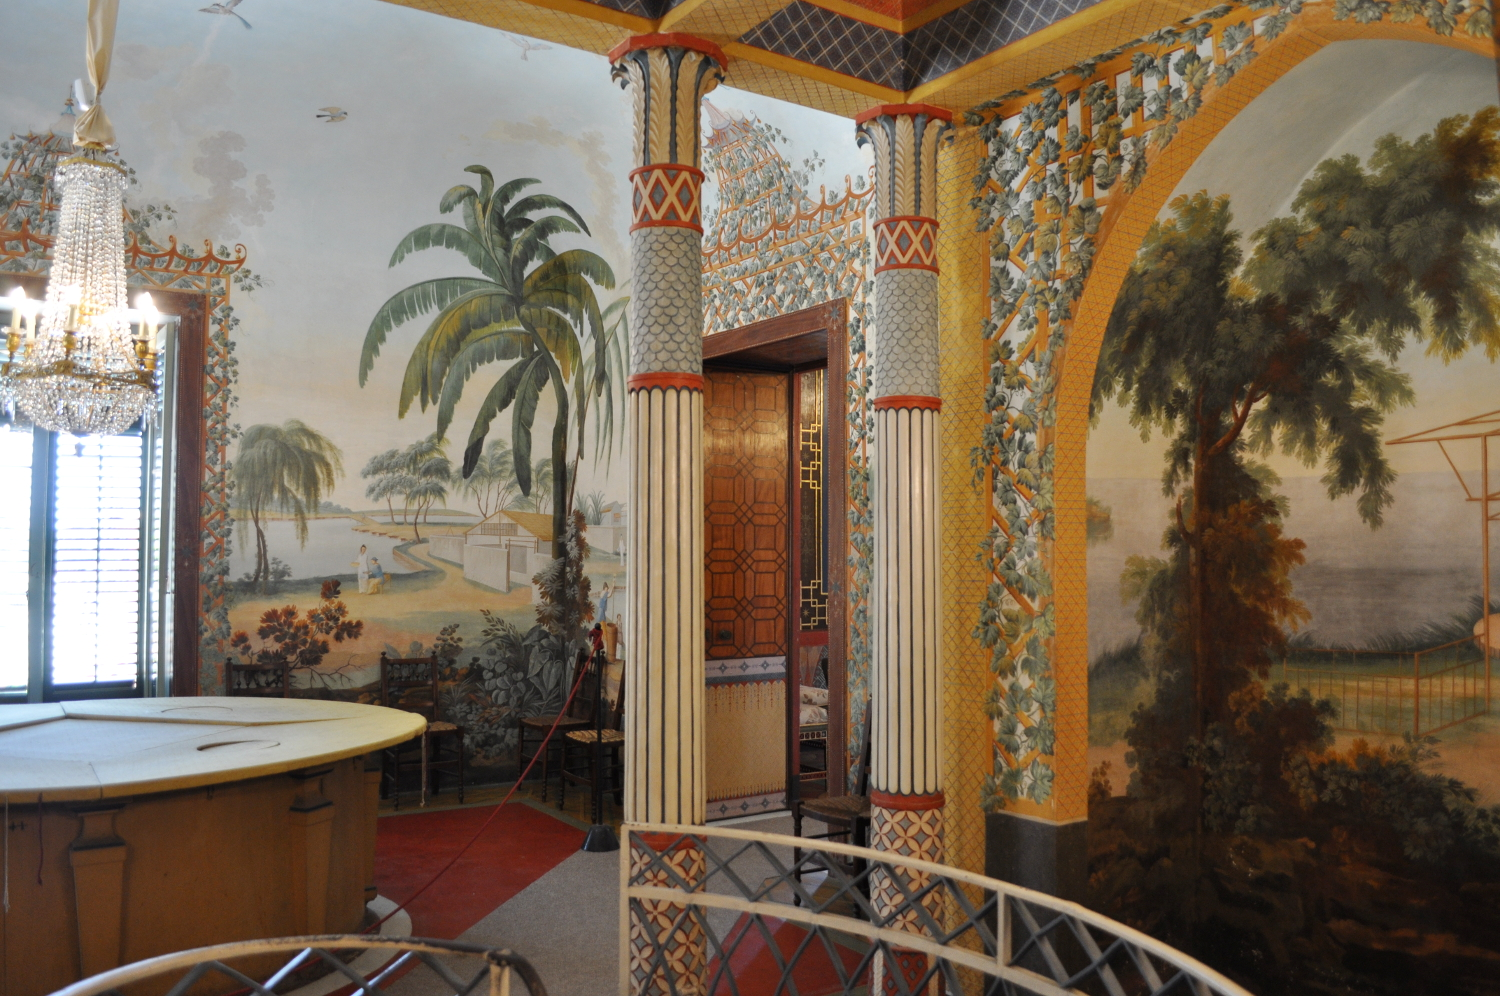 rocaille-blog-palazzina-cinese-palermo-10